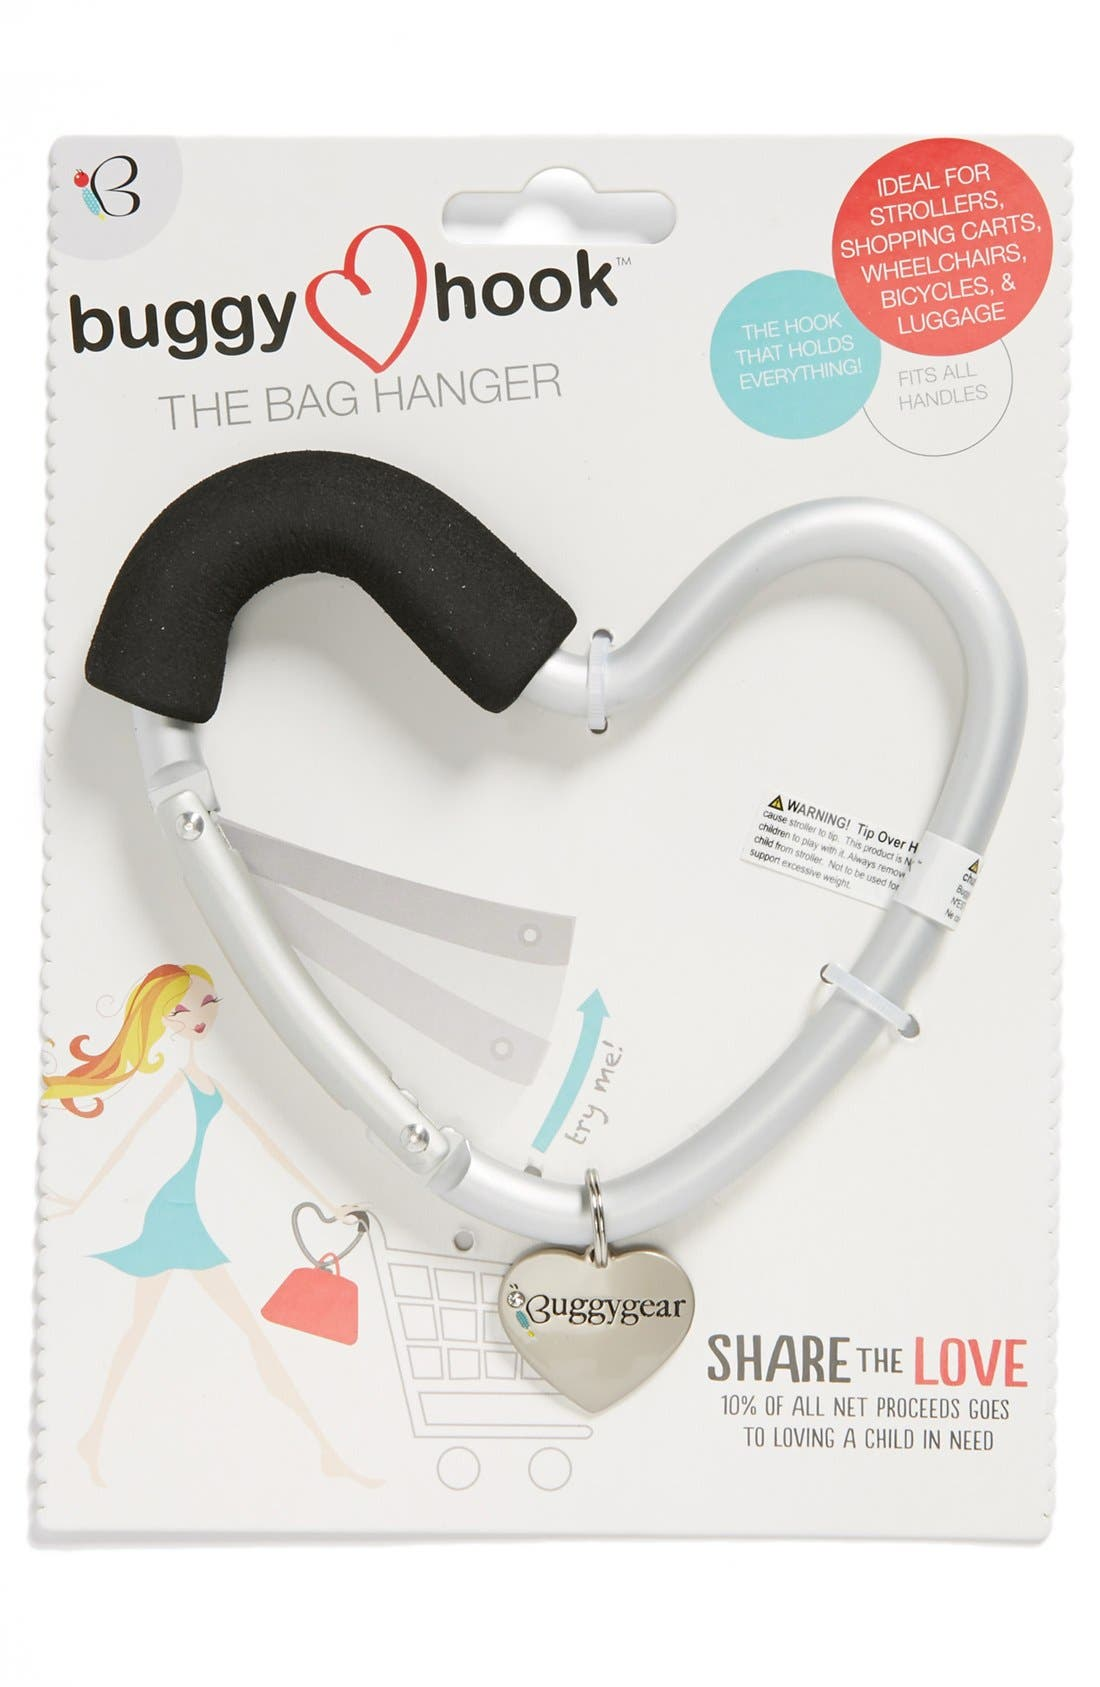 Buggygear 'Buggy Heart Hook' Stroller Bag Hanger,                             Main thumbnail 1, color,                             SILVER/ BLACK